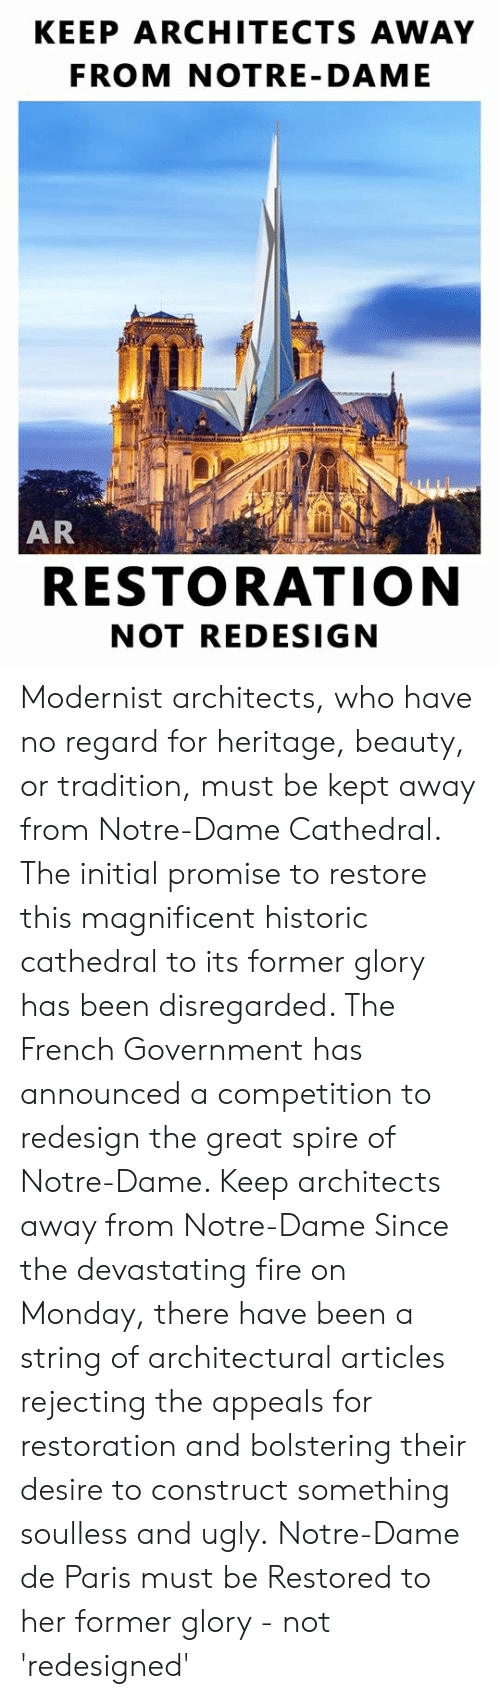 Dank, Fire, and Ugly: KEEP ARCHITECTS AWAY  FROM NOTRE- DAME  AR  RESTORATION  NOT REDESIGN Modernist architects, who have no regard for heritage, beauty, or tradition, must be kept away from Notre-Dame Cathedral.  The initial promise to restore this magnificent historic cathedral to its former glory has been disregarded. The French Government has announced a competition to redesign the great spire of Notre-Dame.   Keep architects away from Notre-Dame  Since the devastating fire on Monday, there have been a string of architectural articles rejecting the appeals for restoration and bolstering their desire to construct something soulless and ugly.  Notre-Dame de Paris must be Restored to her former glory - not 'redesigned'